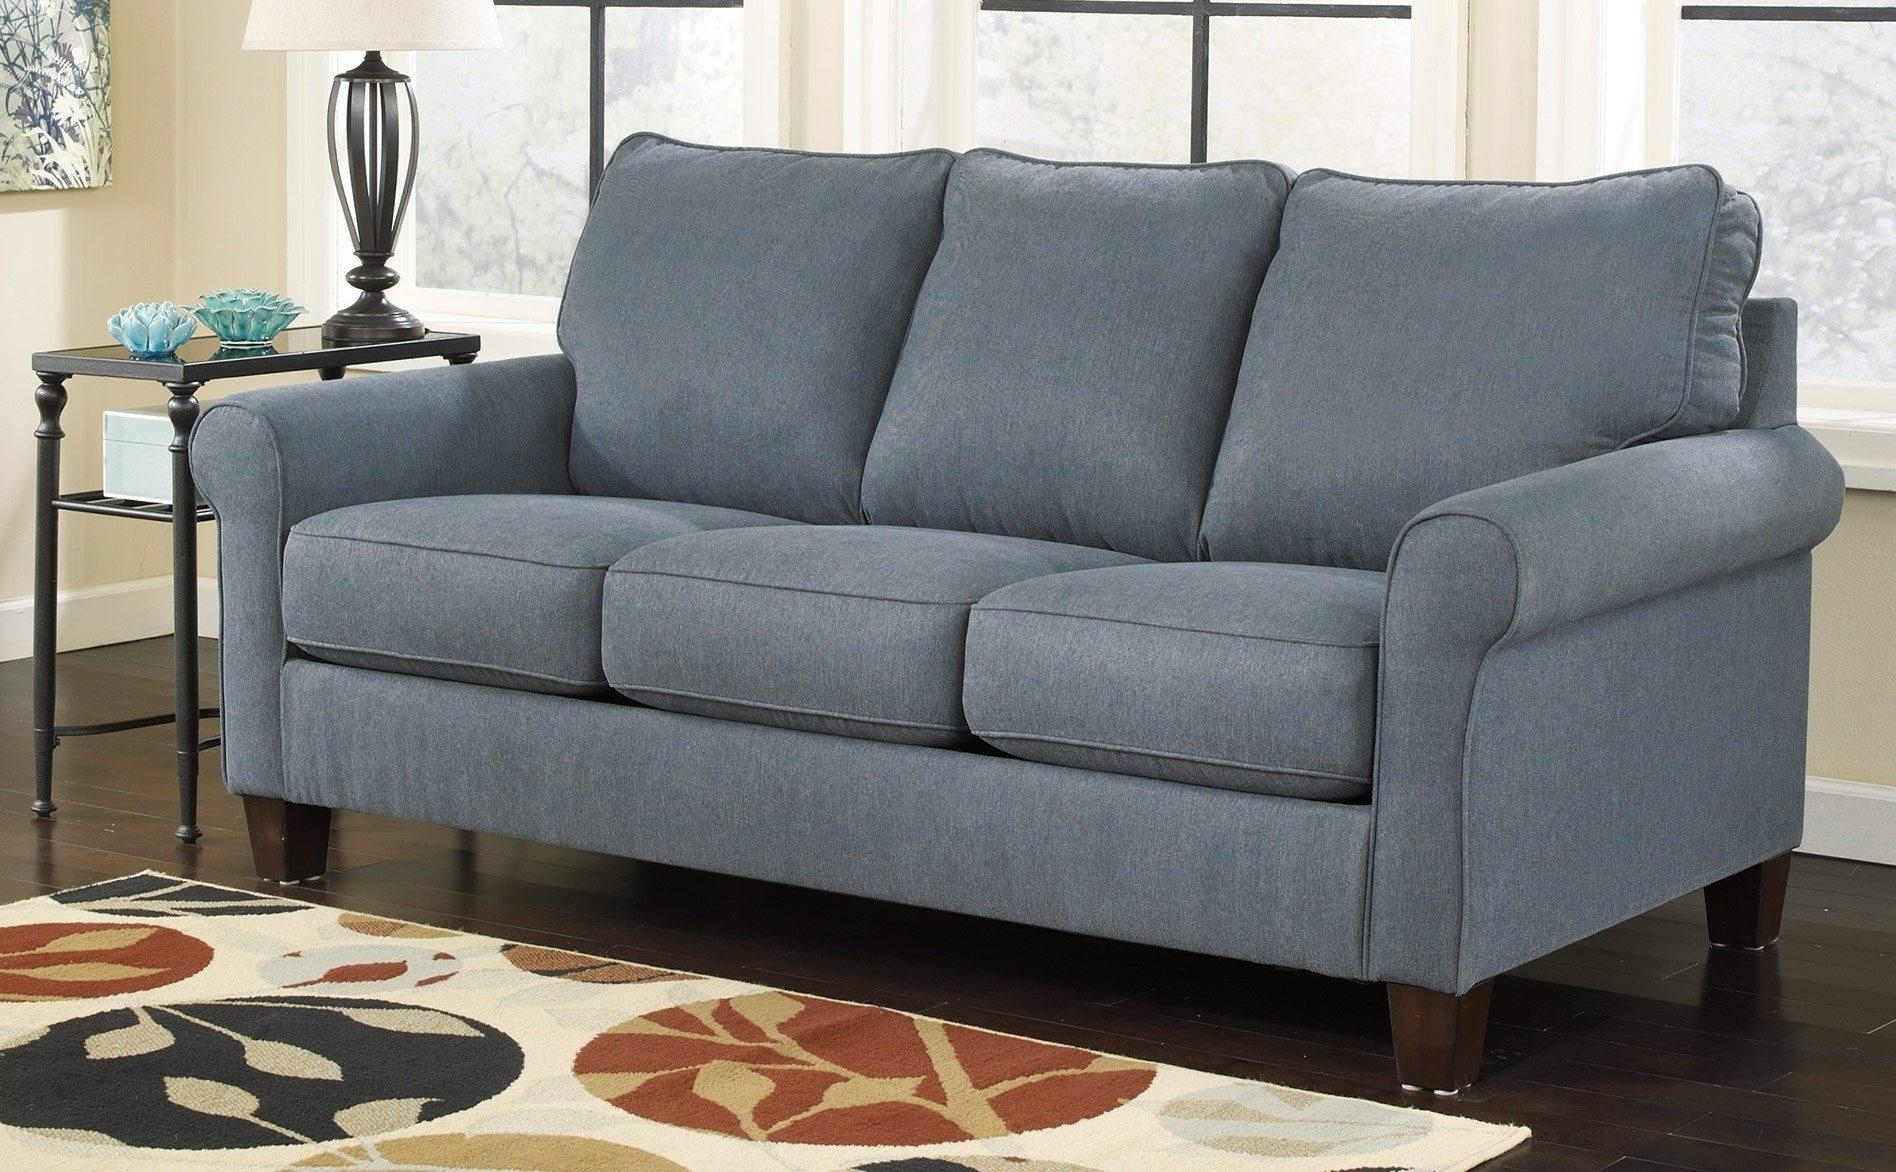 Sealy sofas innovative sealy leather sofa 10 05 13 low for Sealy sofa bed